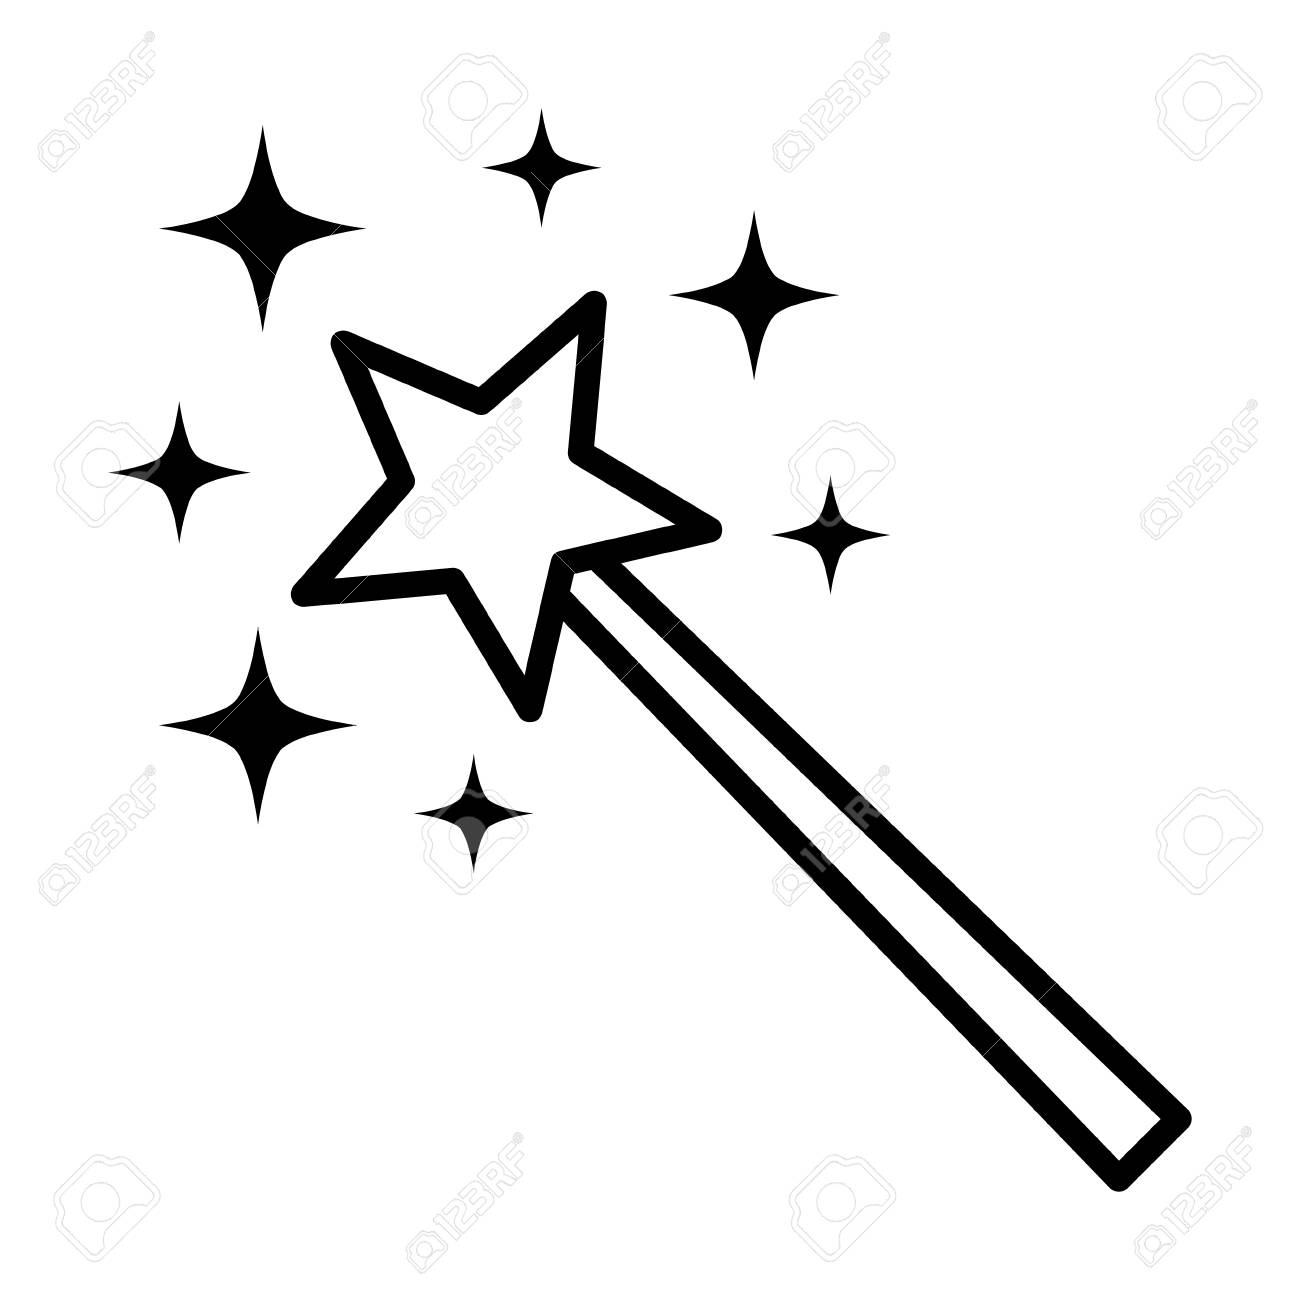 Magic wane with star and sparks or miracle wish line art vector icon for apps and games - 118411955